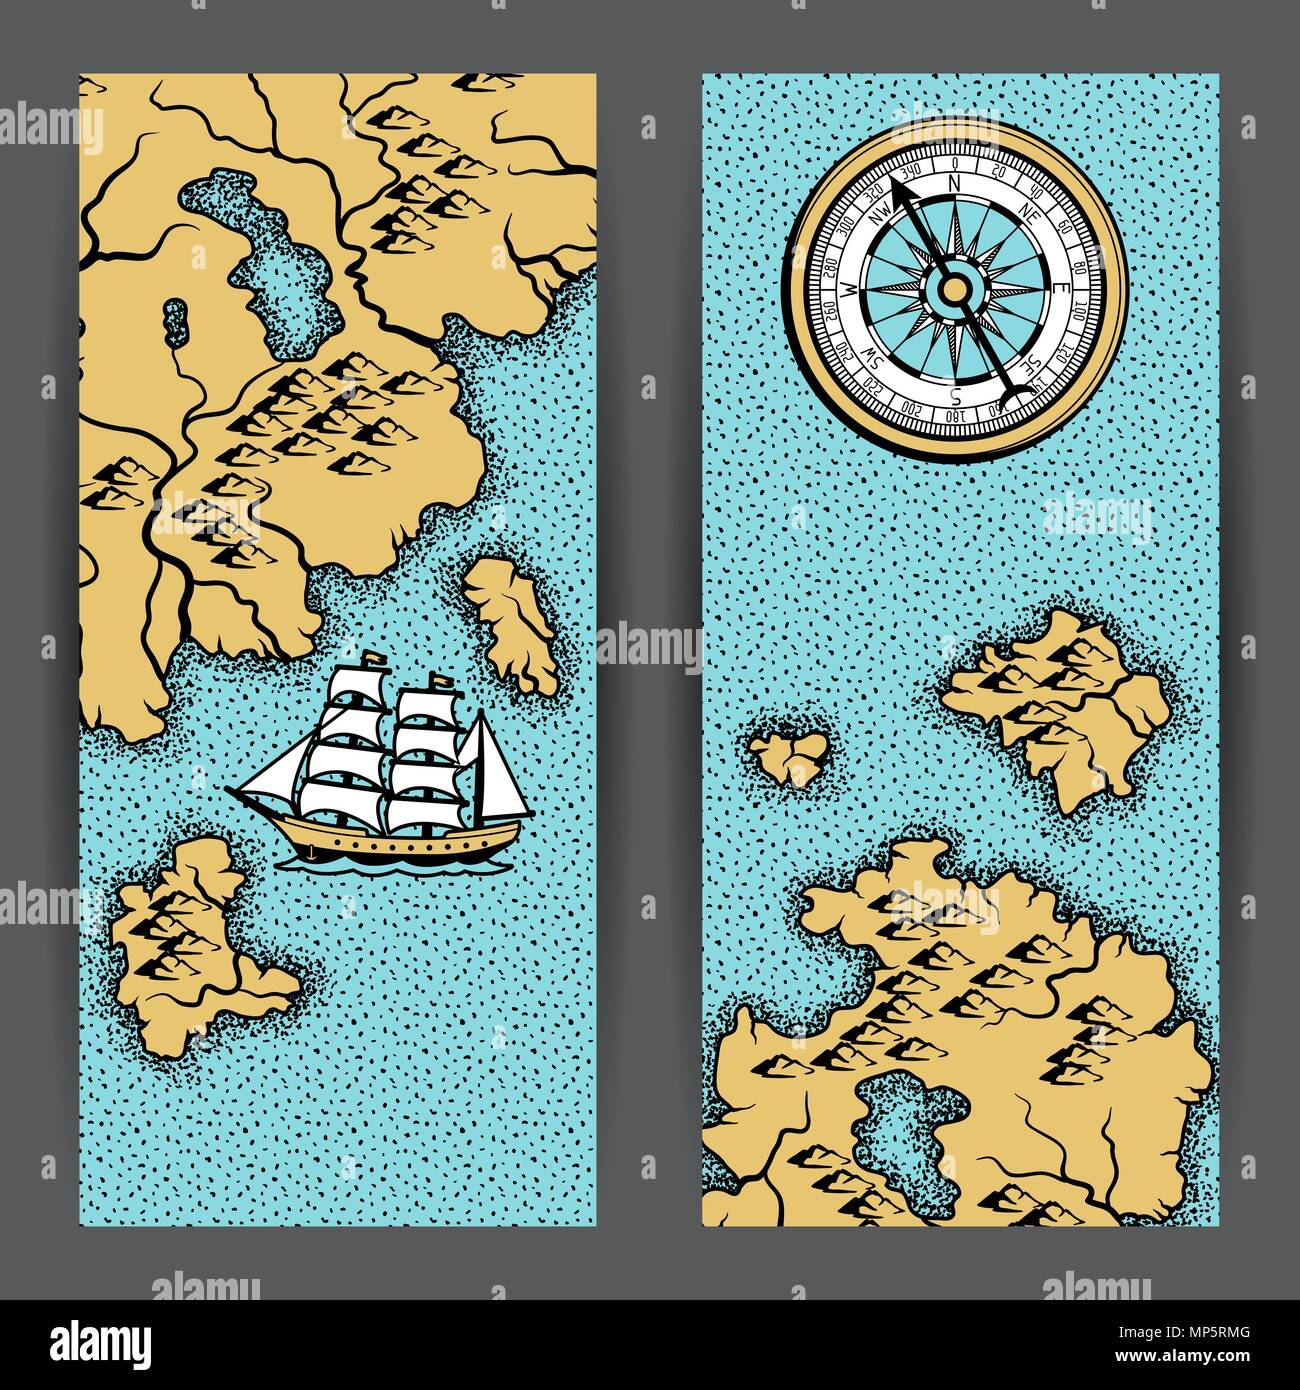 Banners with old nautical map. - Stock Vector